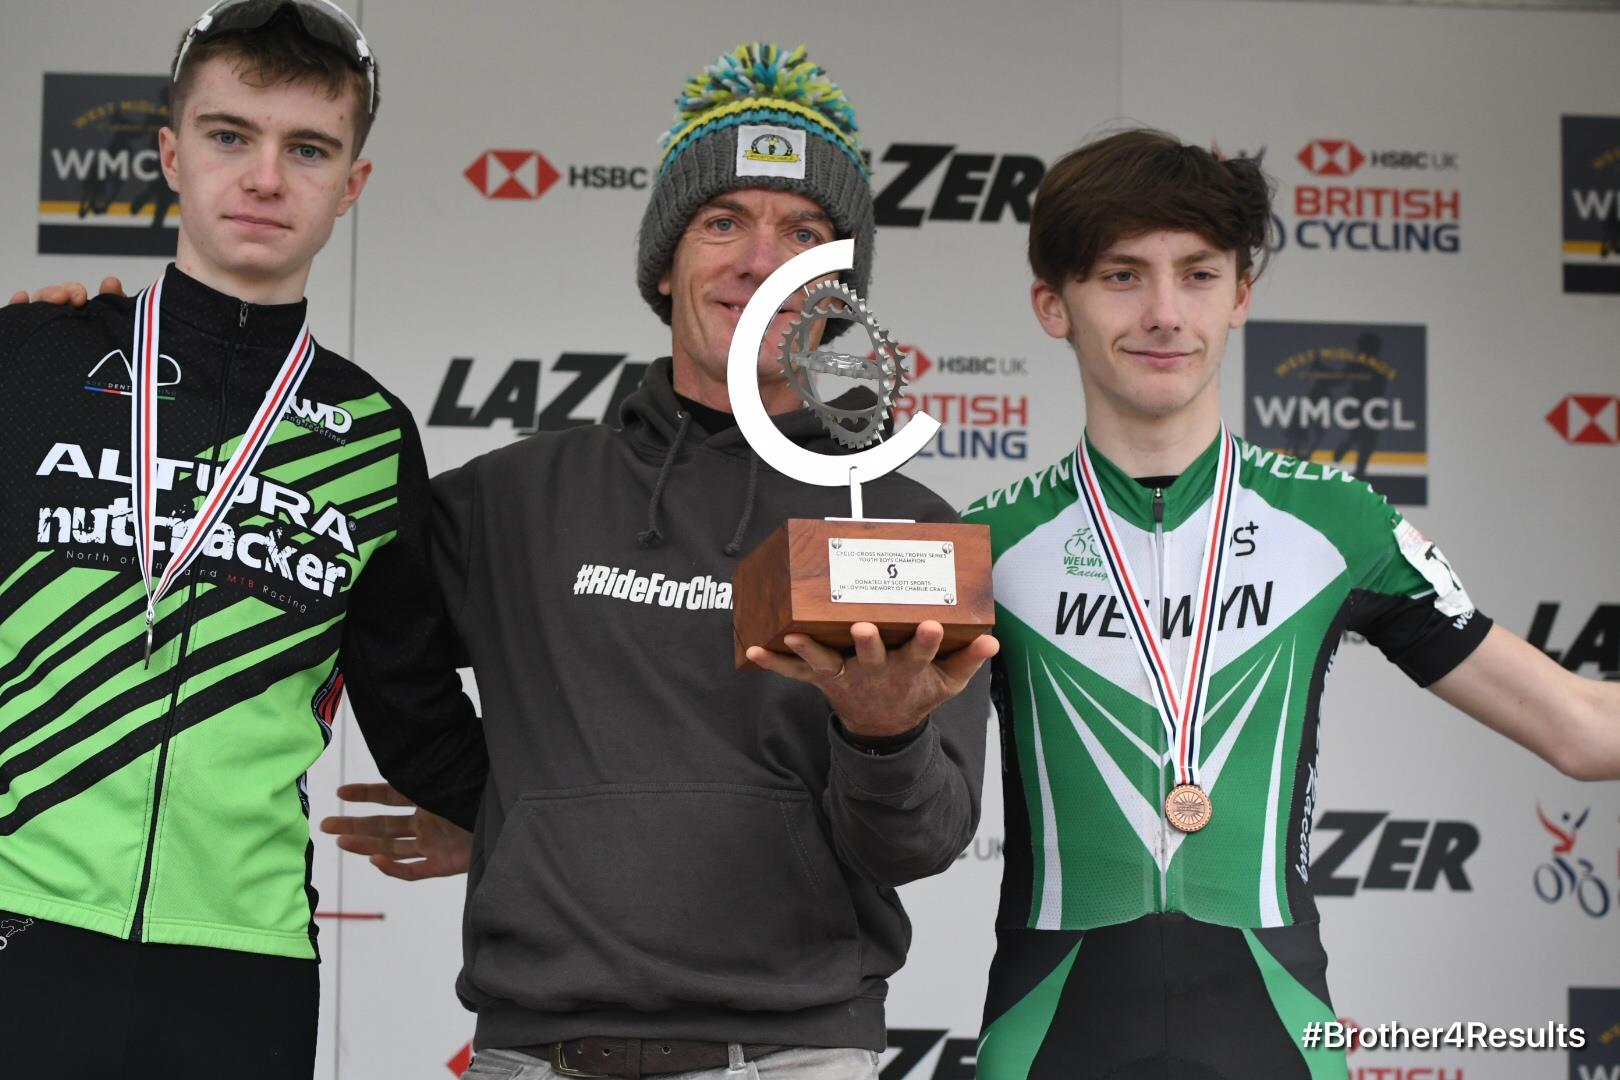 Joe Kieley finished 3rd overall in the National Trophy Series